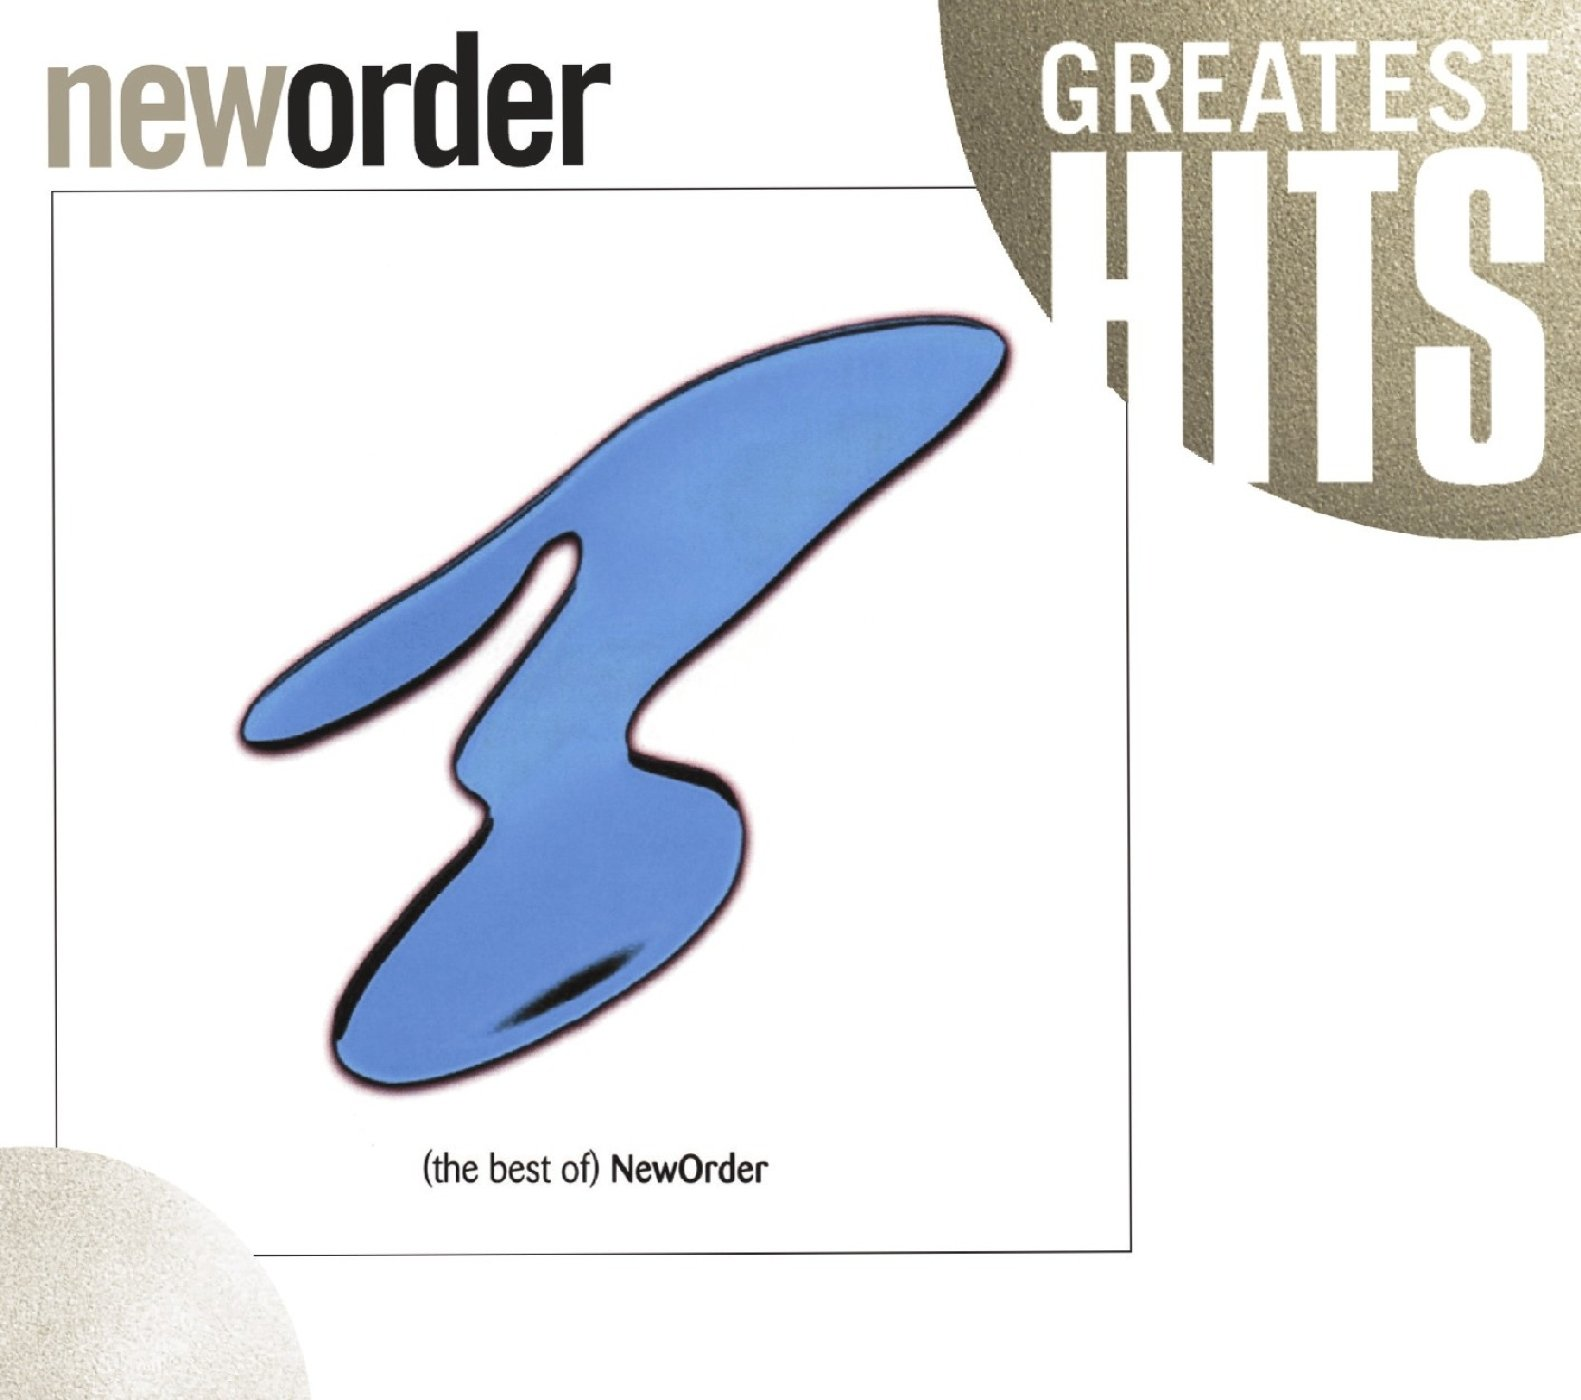 The Best Of New Order by NEW ORDER